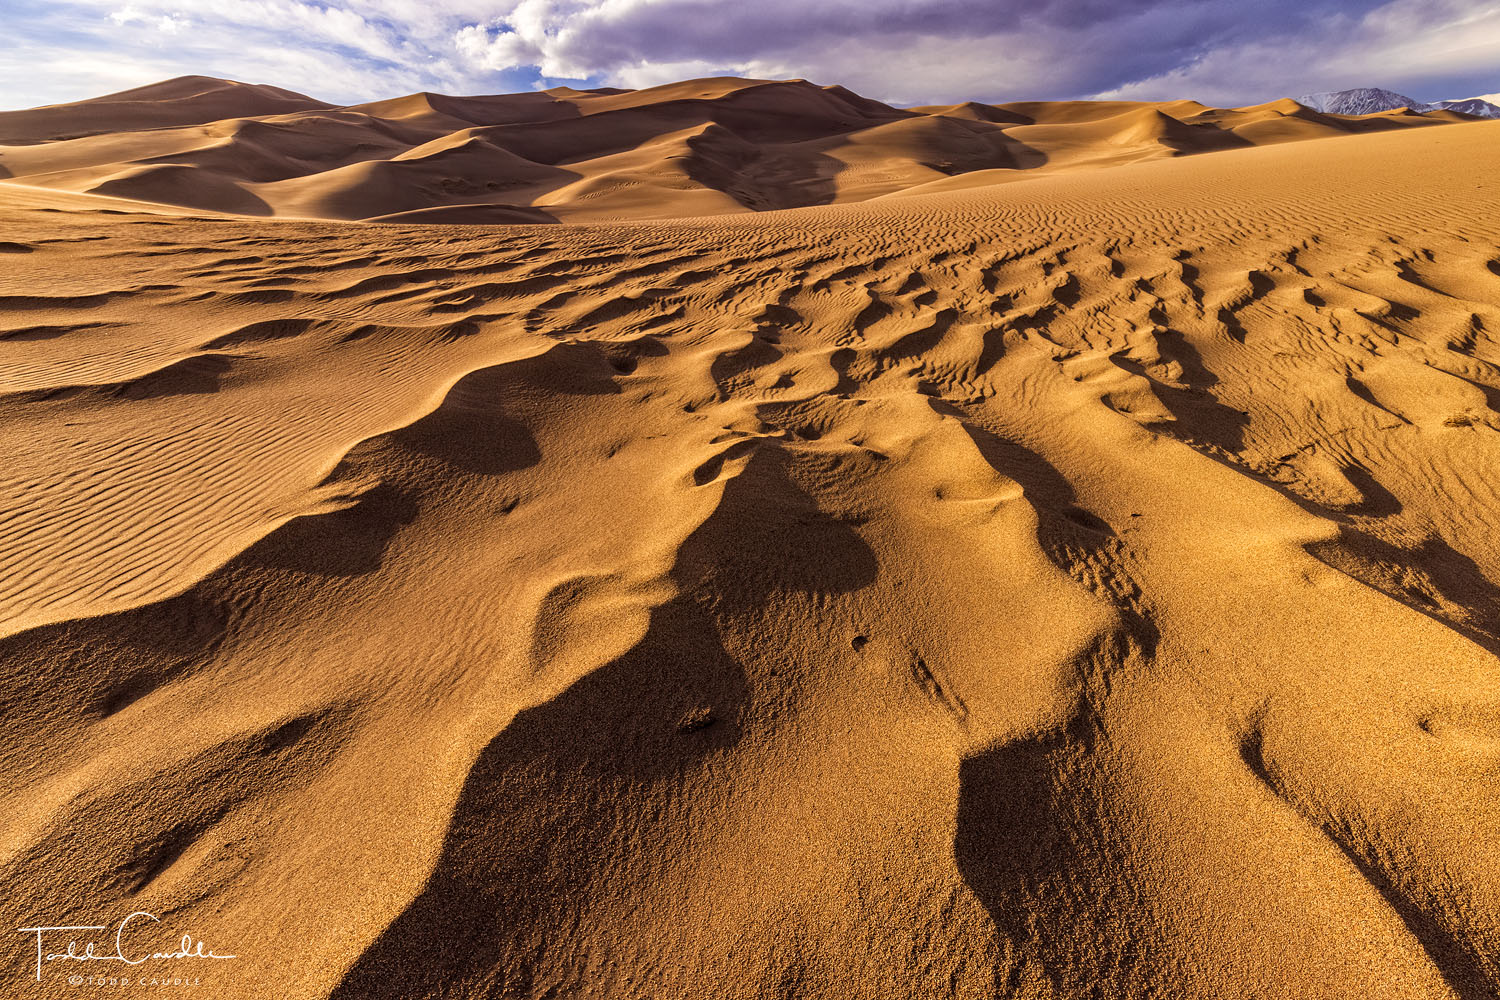 Dune ripples are accentuated by the setting sun at Great Sand Dunes National Park.